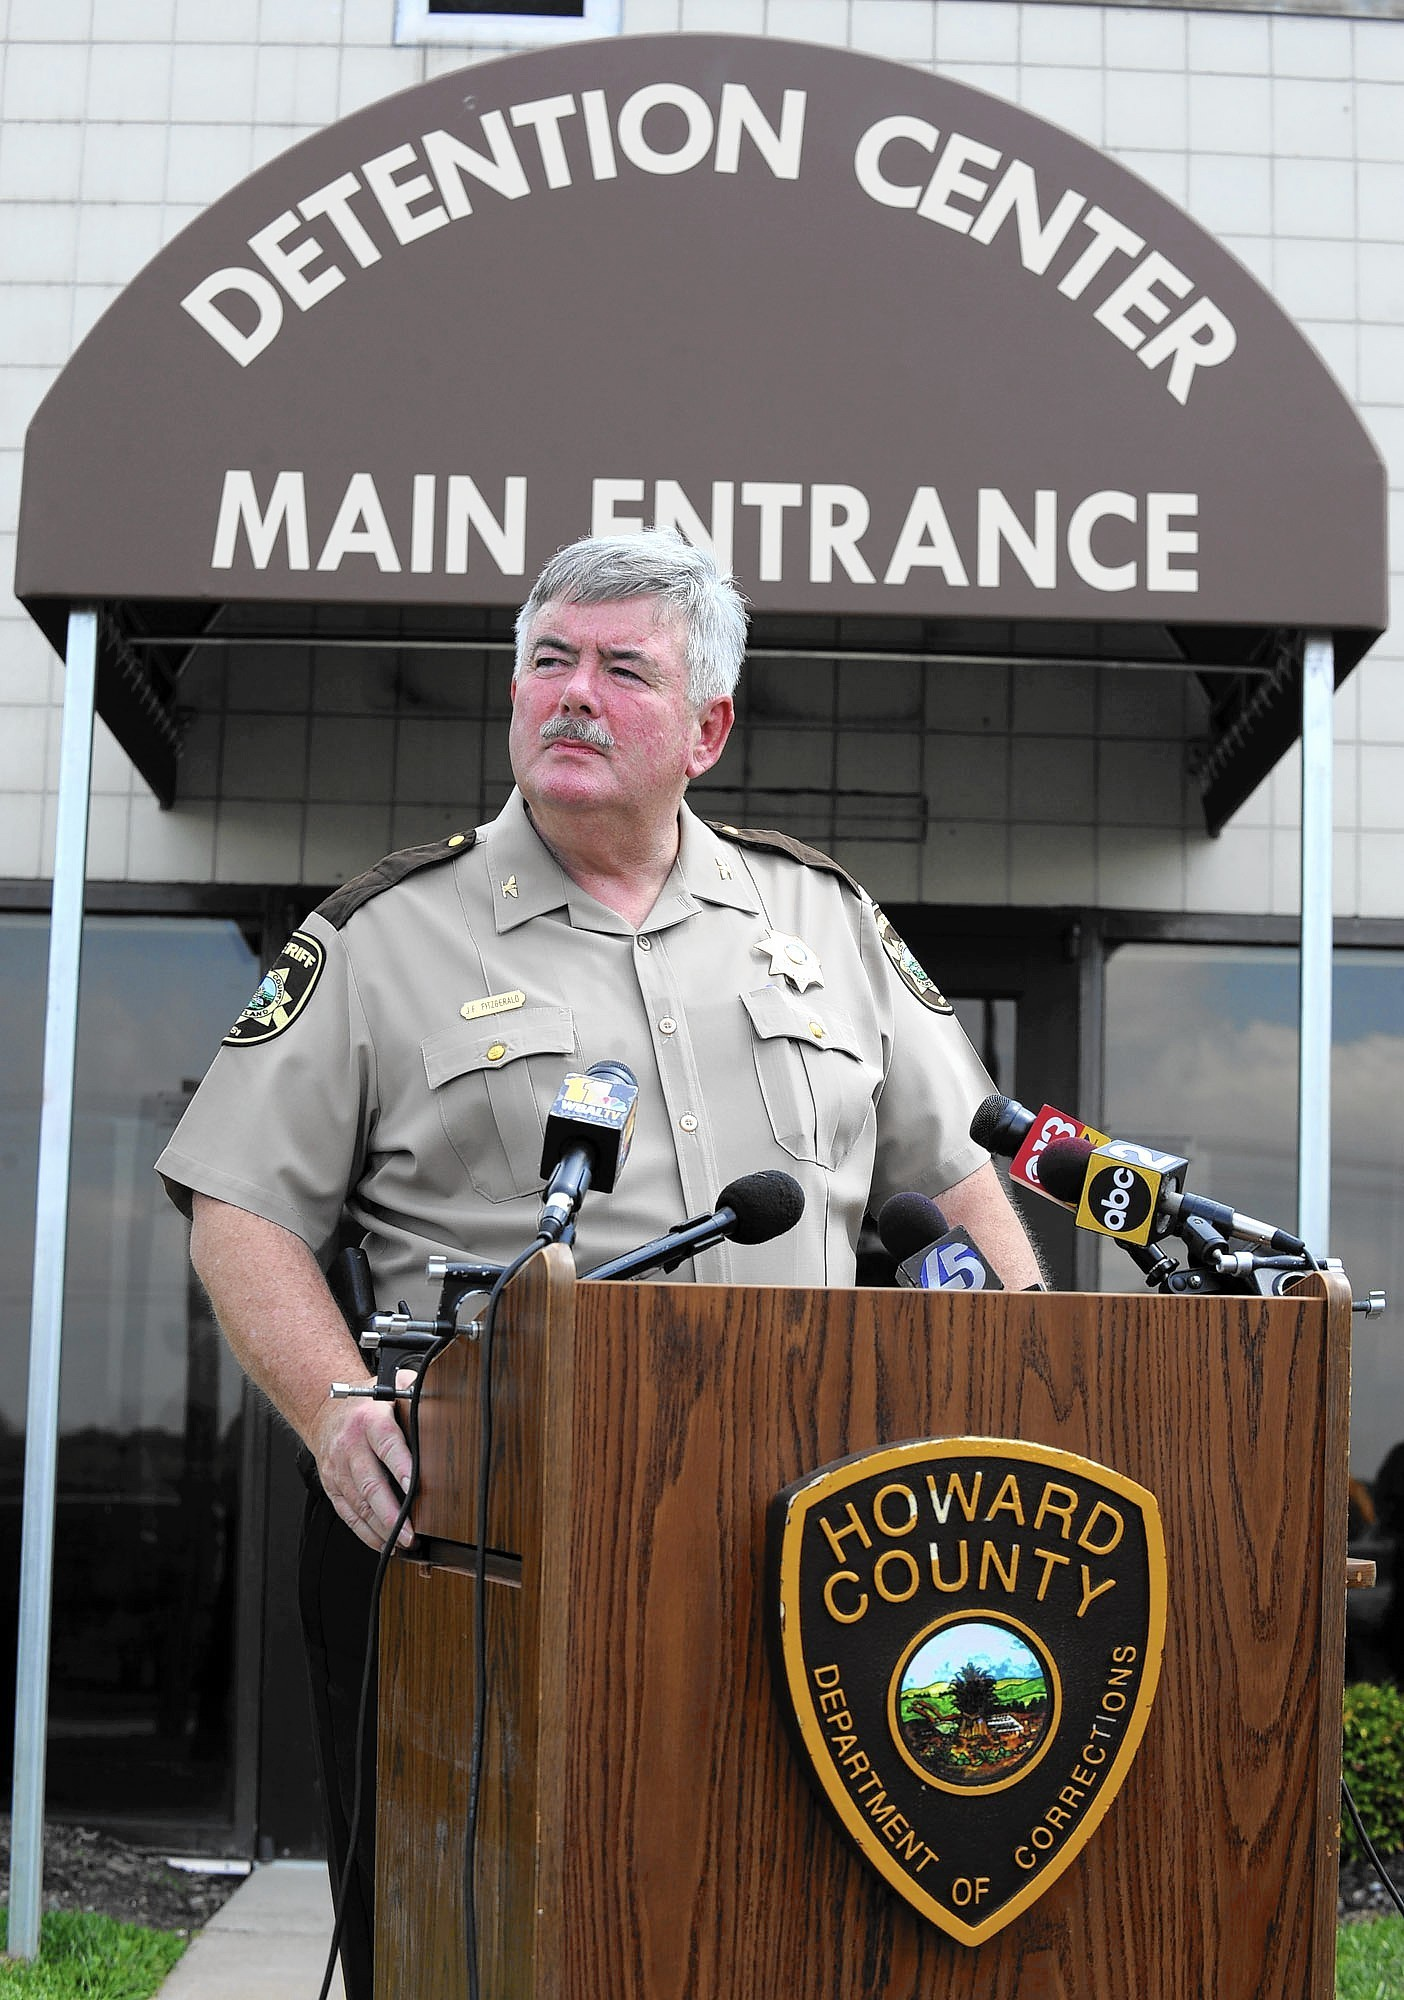 Report against Howard County sheriff unveils 'common knowledge' of a 'living hell' unchecked for years, sources say